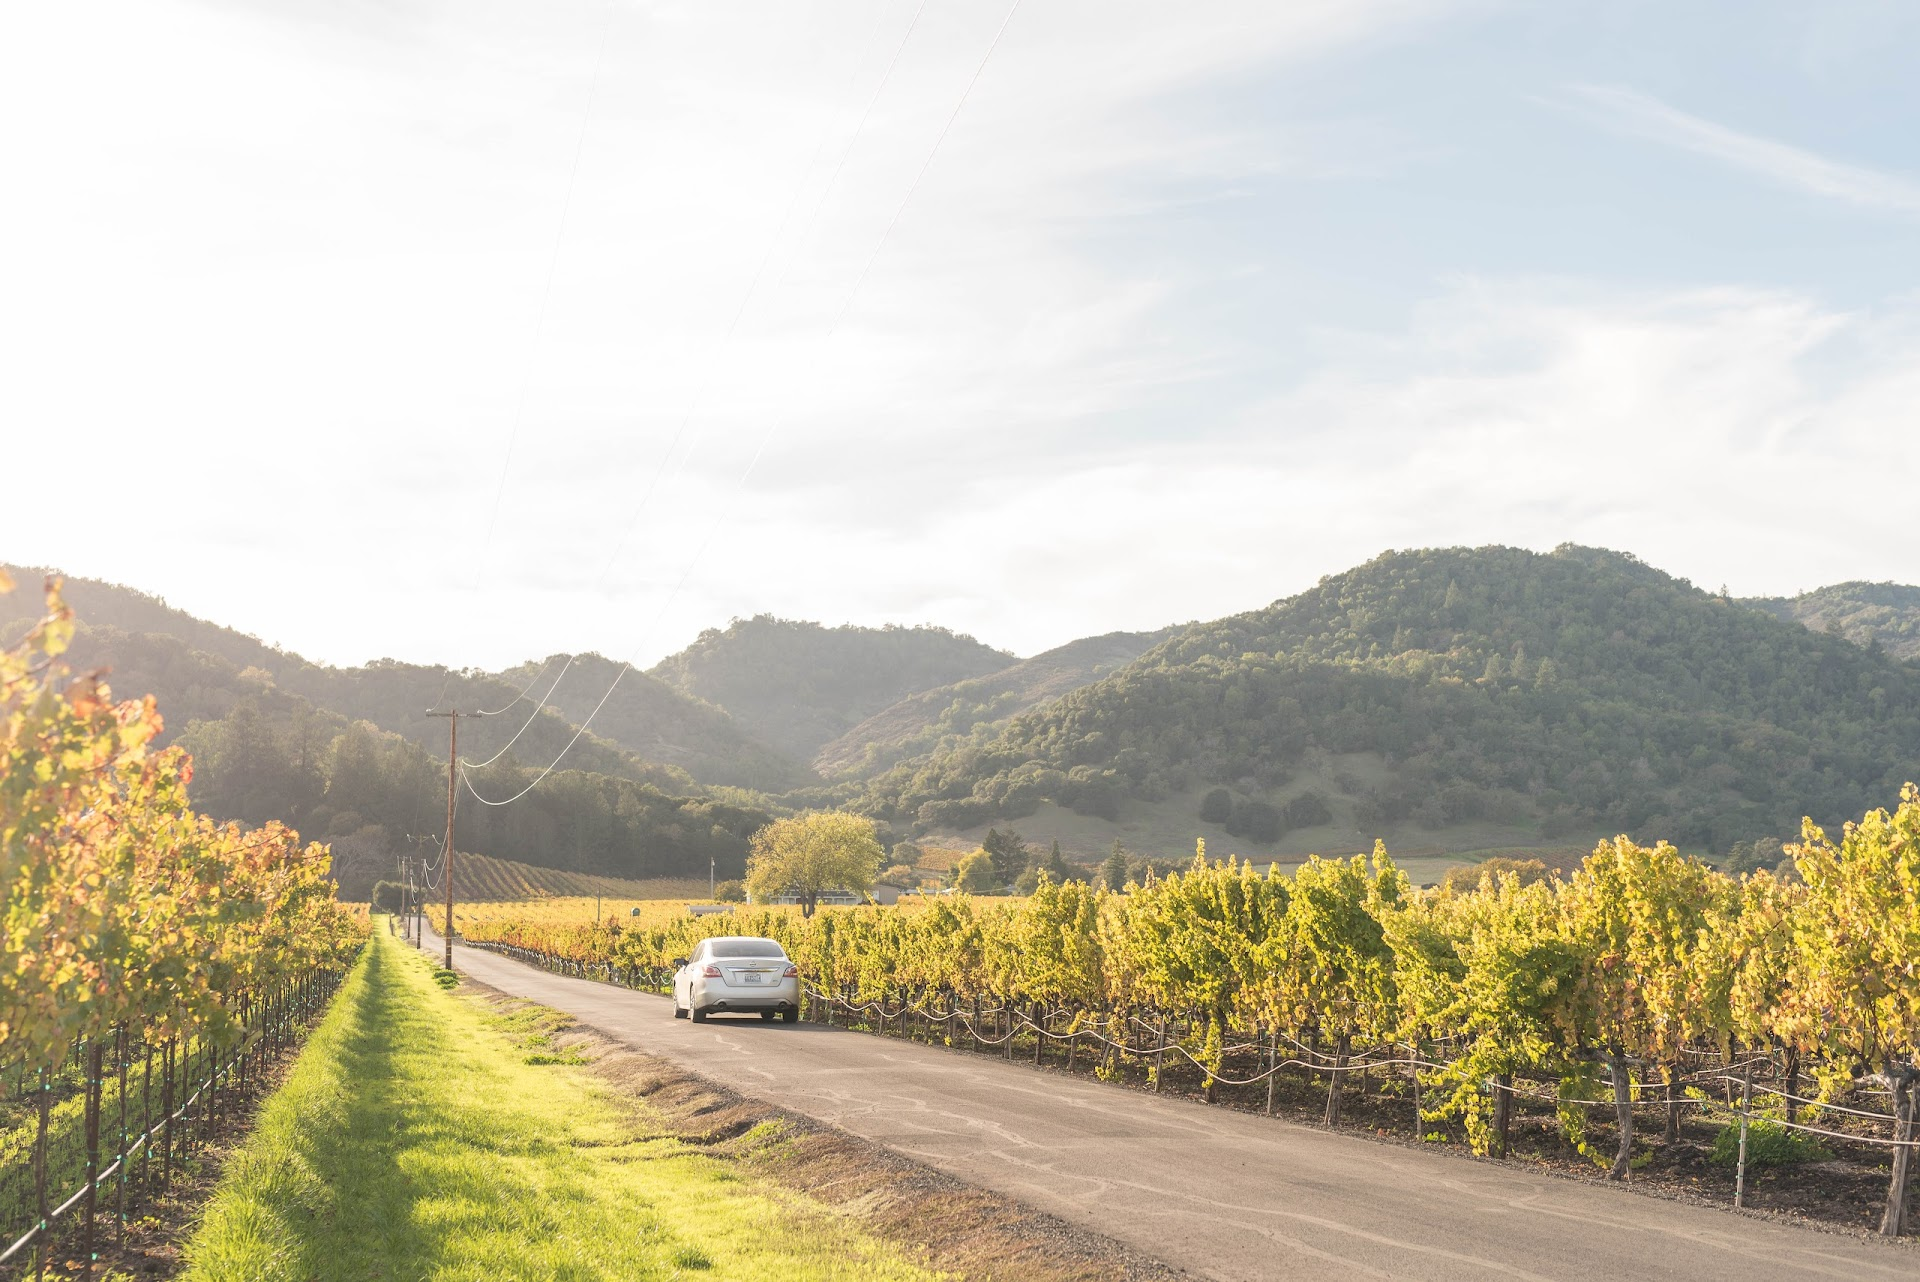 road trip, cheap tips, how to save money on road trips, california, napa valley, yountville, photography, car, vineyards, fall in napa, autumn